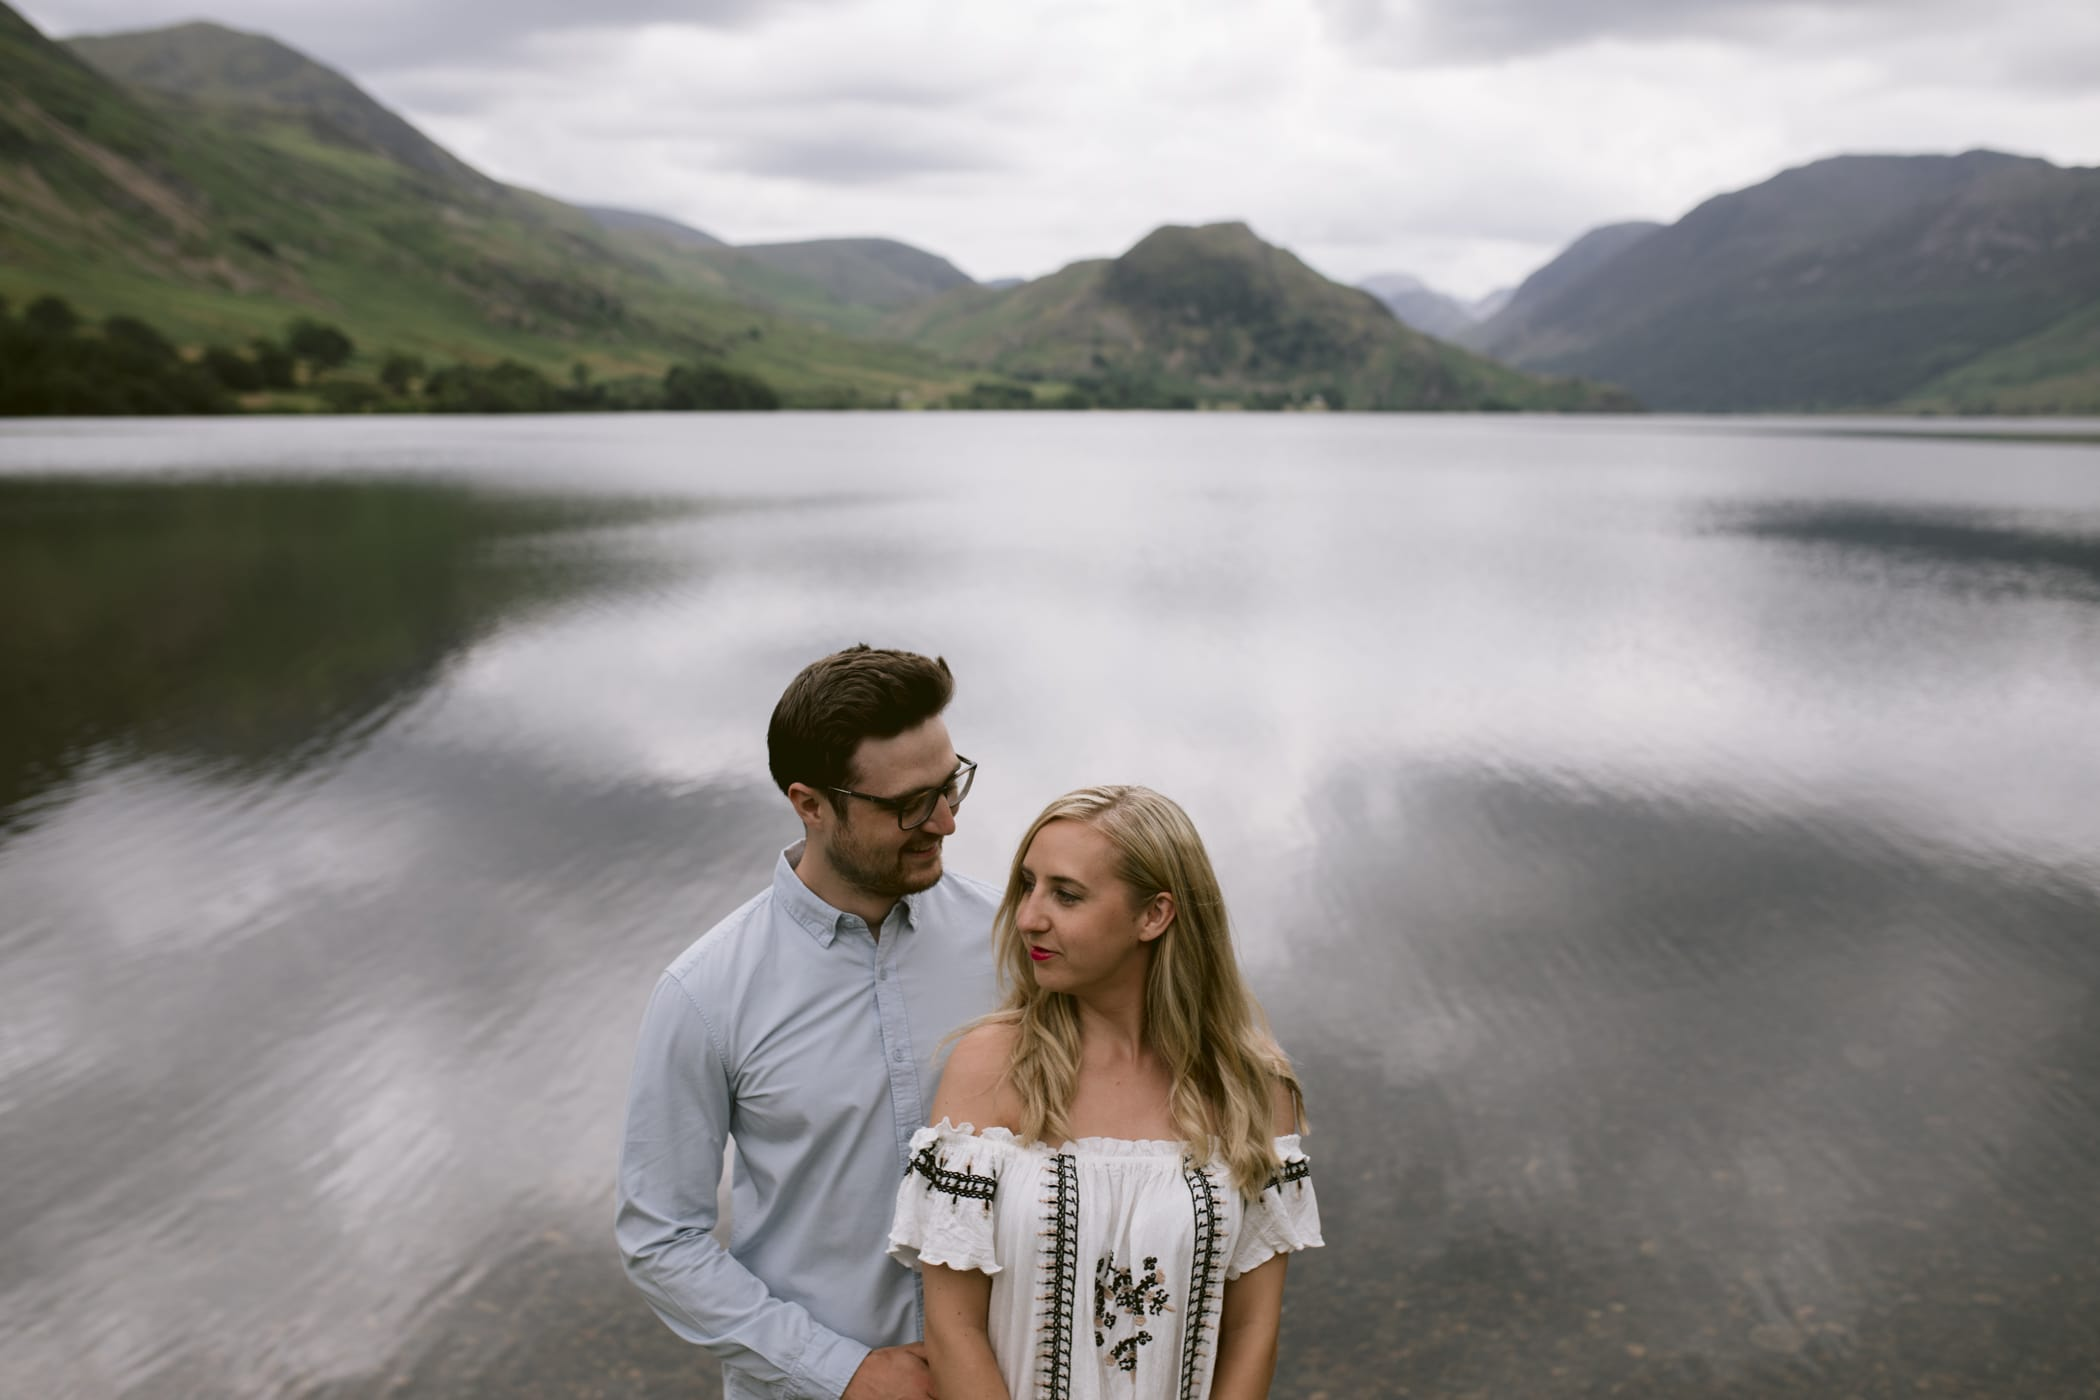 Coupe standing at Crummock Water in the Lake District for a couple portrait session